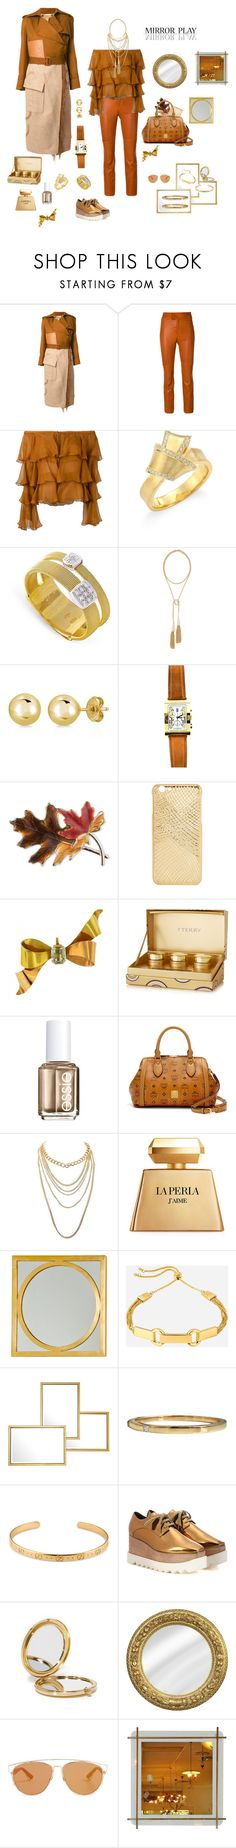 """""""Mirror play"""" by mbarbosa ❤ liked on Polyvore featuring Loewe, Isabel Marant, Balmain, Carelle, Marco Bicego, Kendra Scott, BERRICLE, Bulgari, Anne Klein and By Terry"""